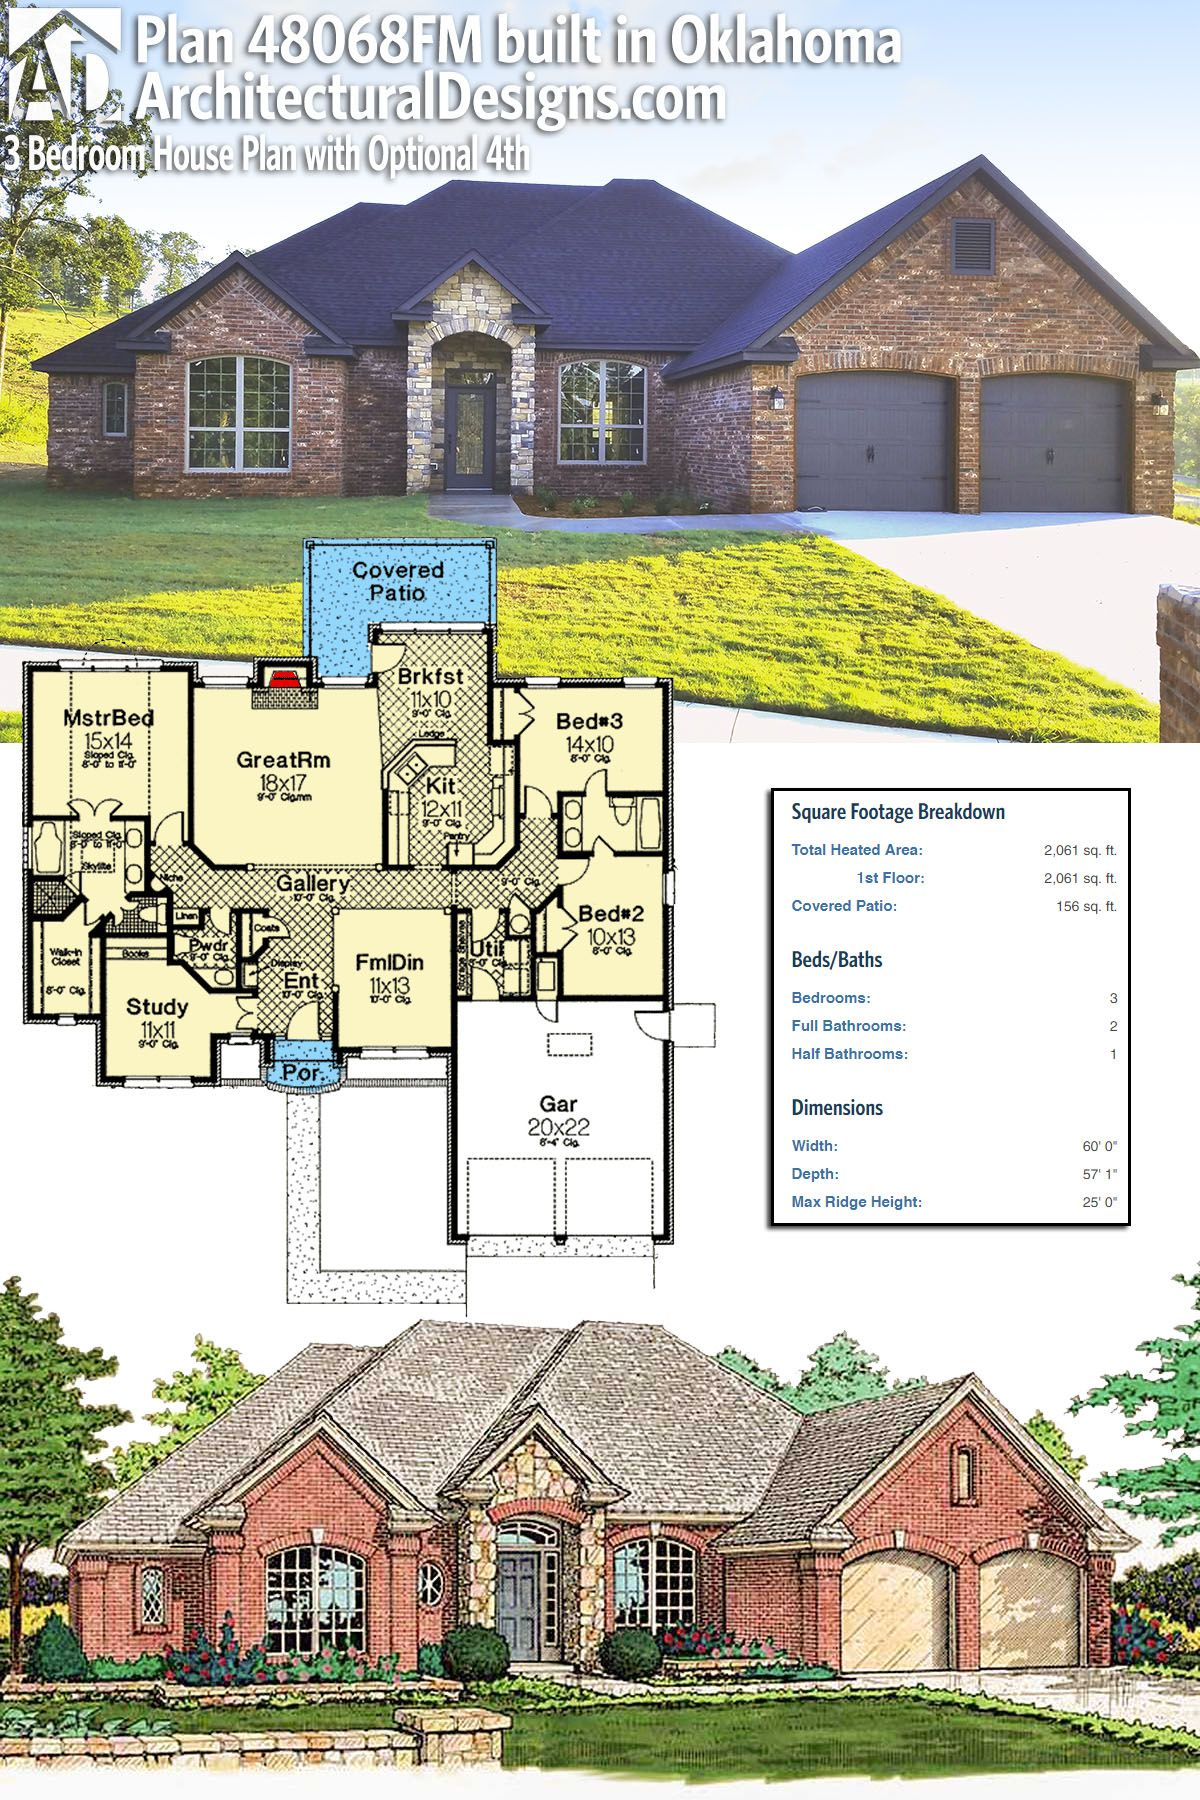 Plan 48068fm 3 Bedroom House Plan With Optional 4th Architectural Design House Plans House Plans Bedroom House Plans